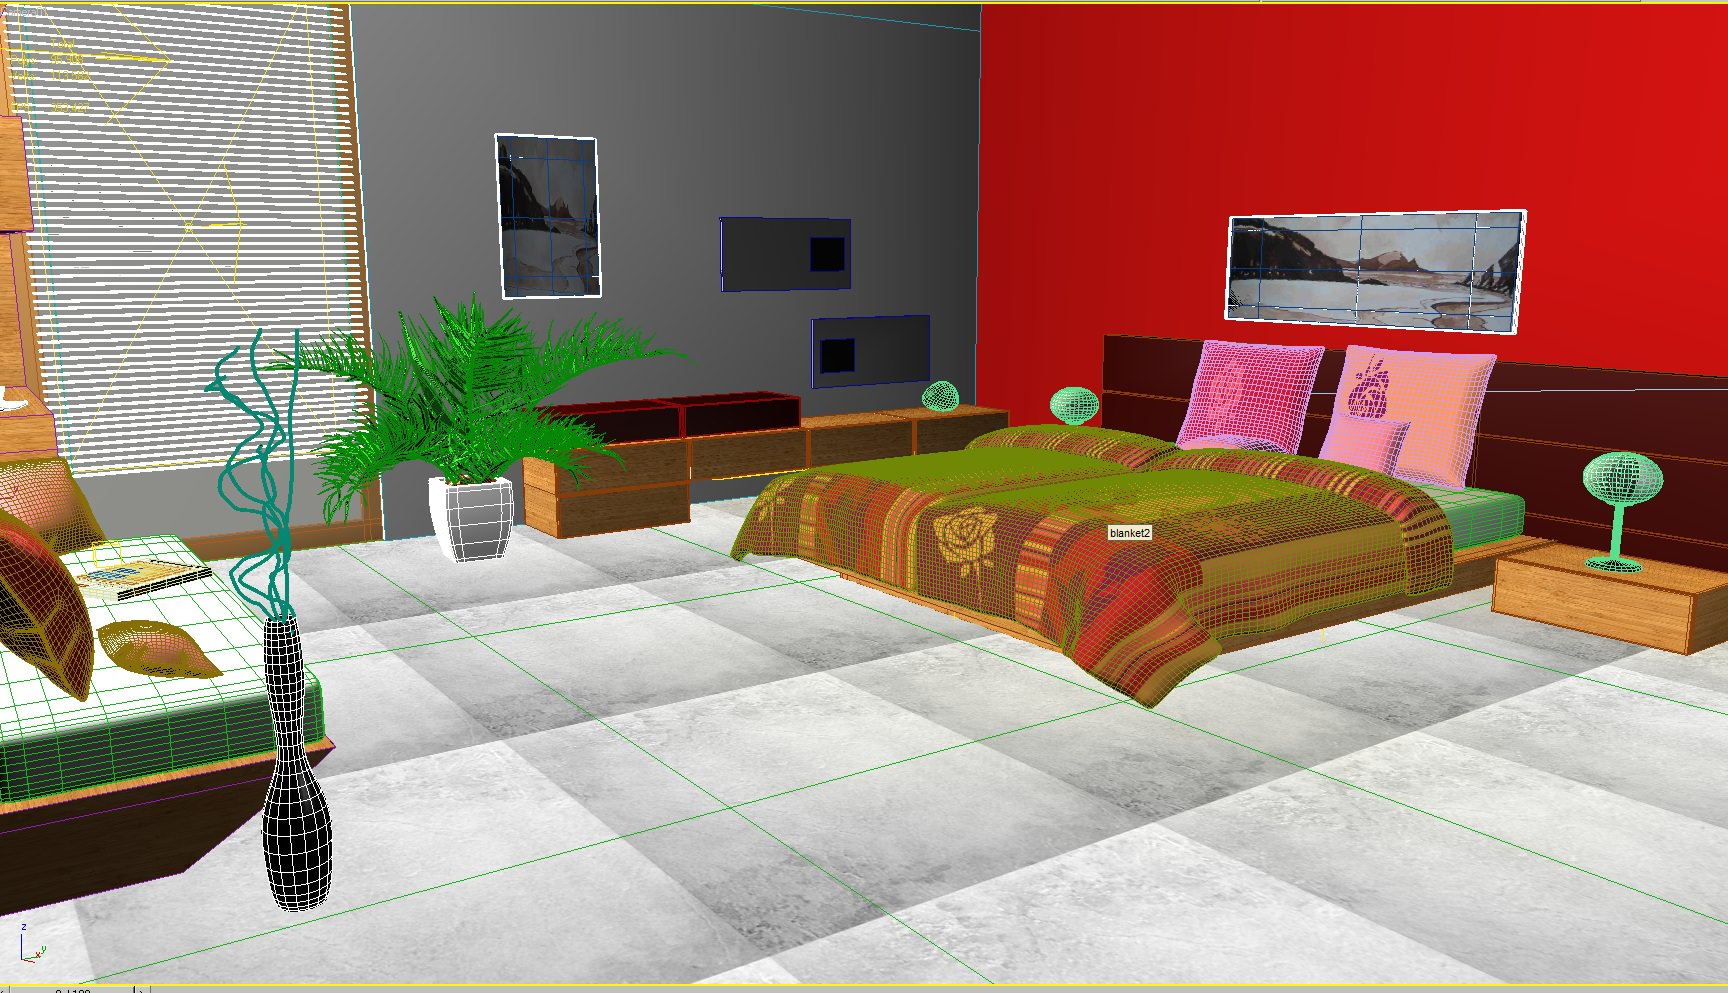 Bedroom scene 03 3D Model max 3ds